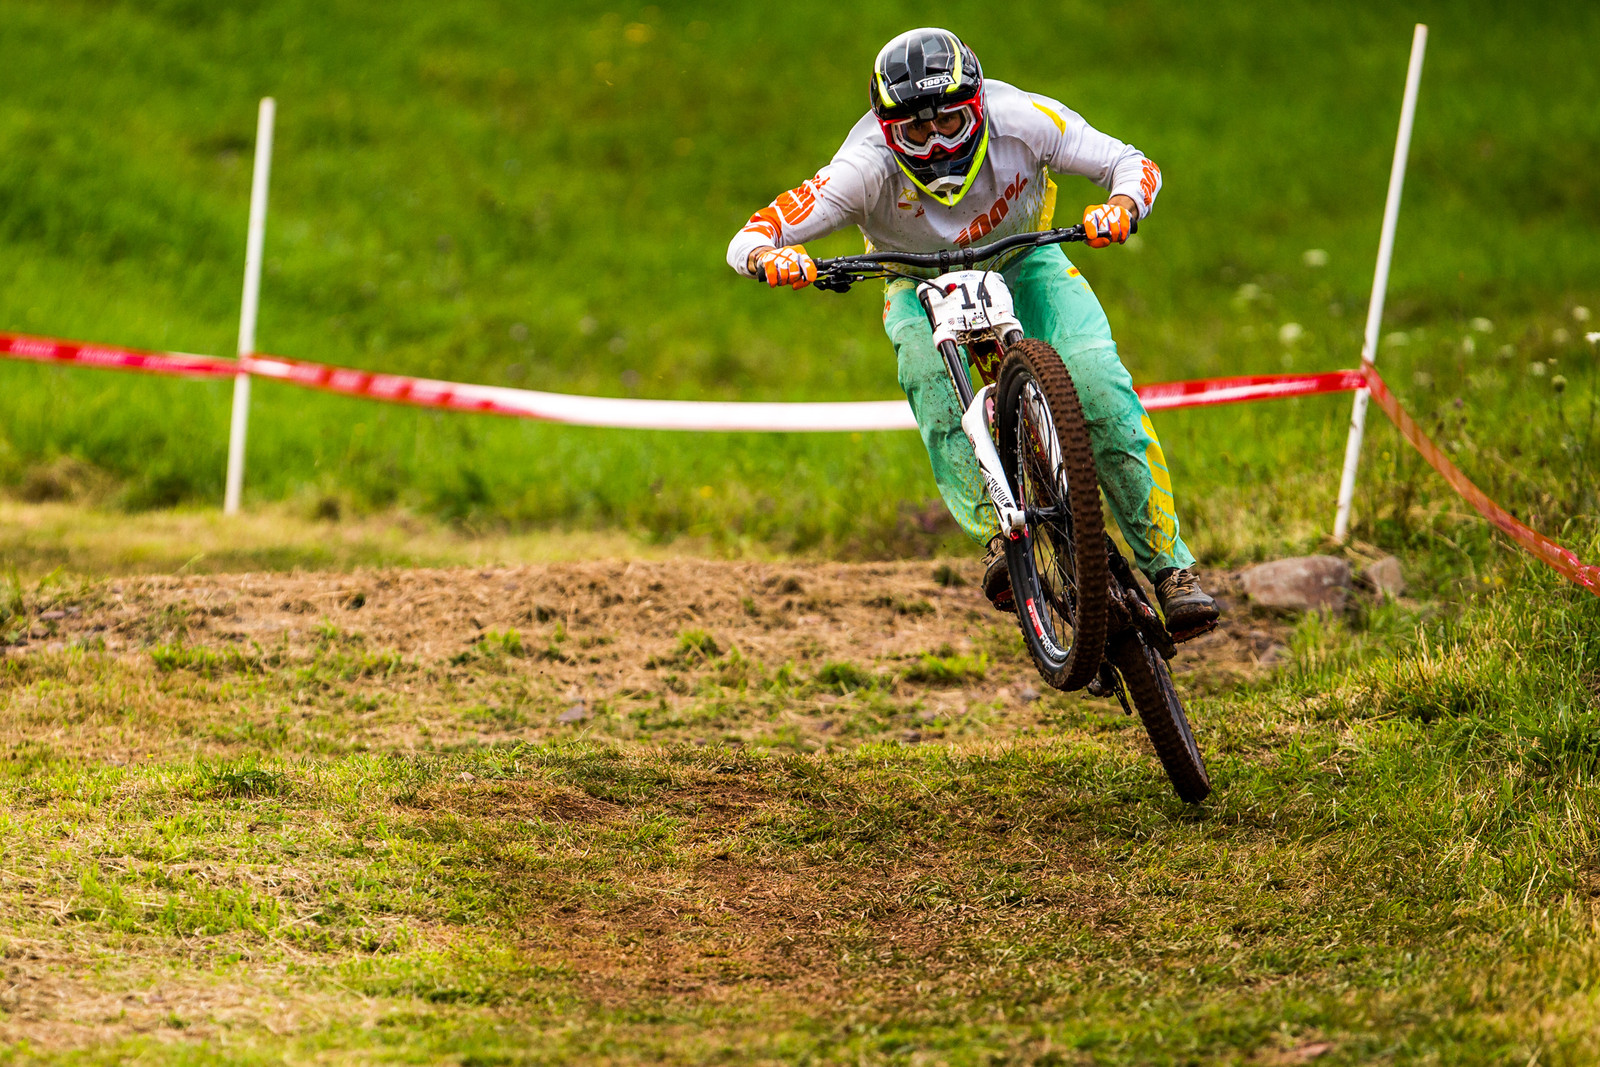 Jordan Newth - RACE DAY GALLERY - 2017 Pro GRT, Windham, NY - Mountain Biking Pictures - Vital MTB